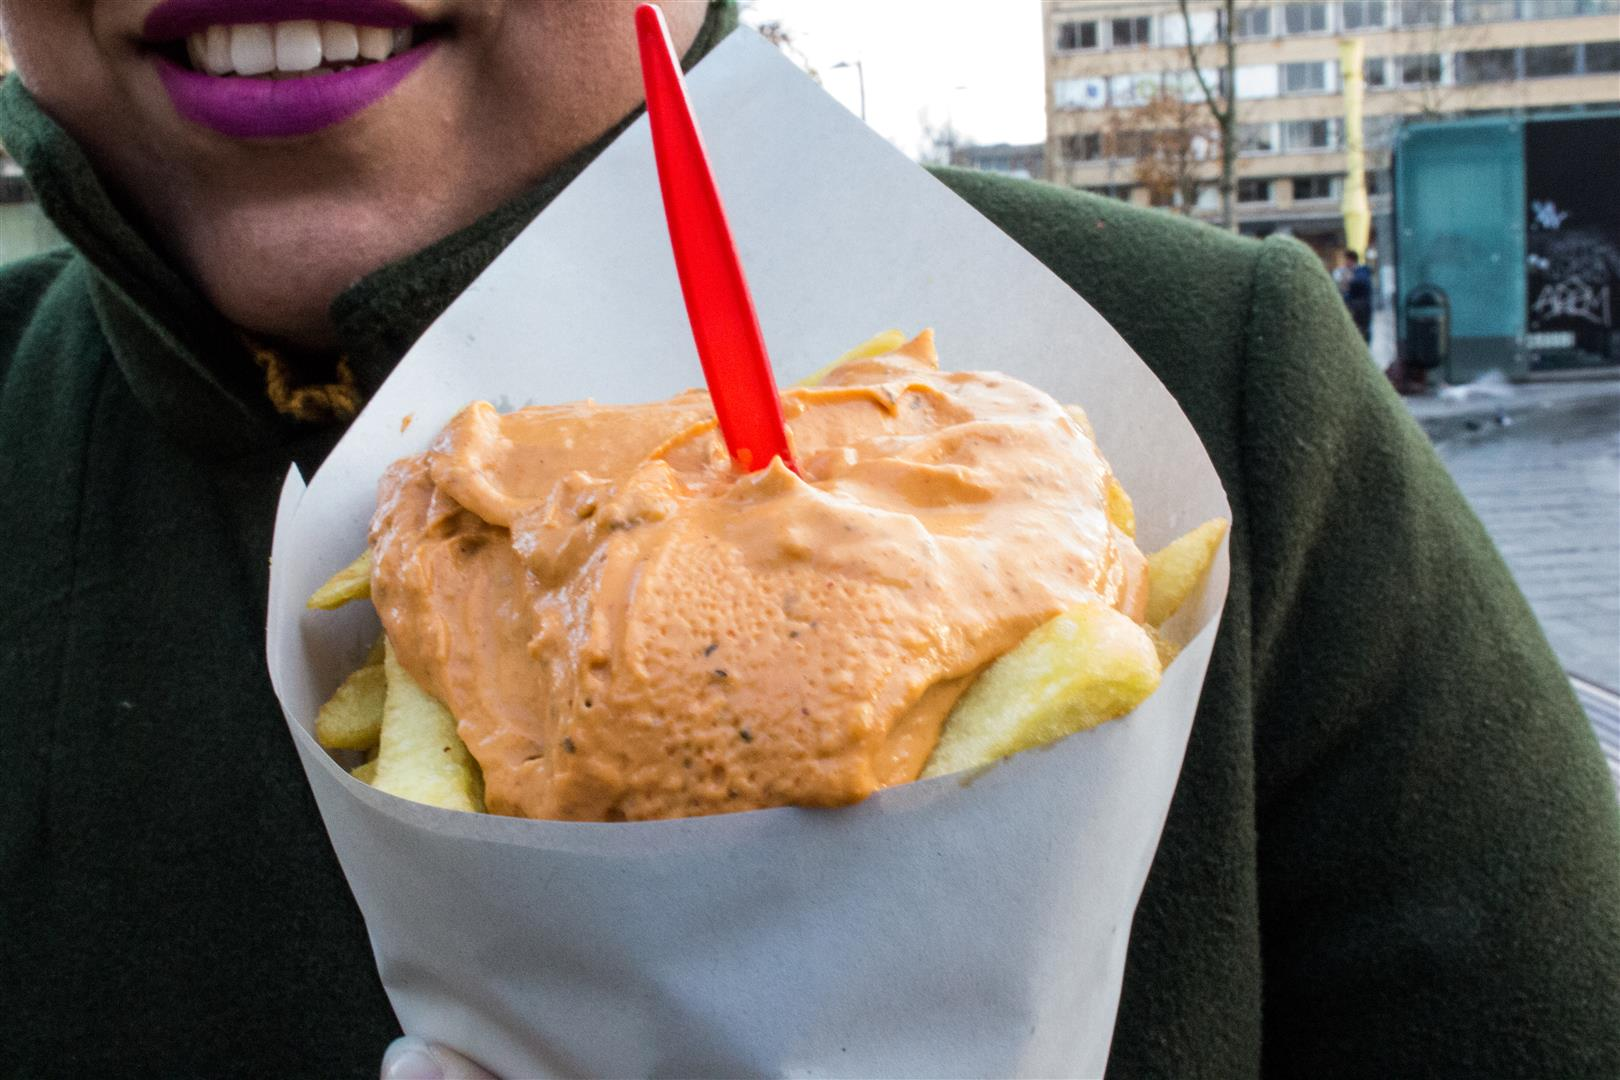 Frit Flagey Fries with Andalouse Sauce - so many fries in this cone, it is practically a meal all on its own!